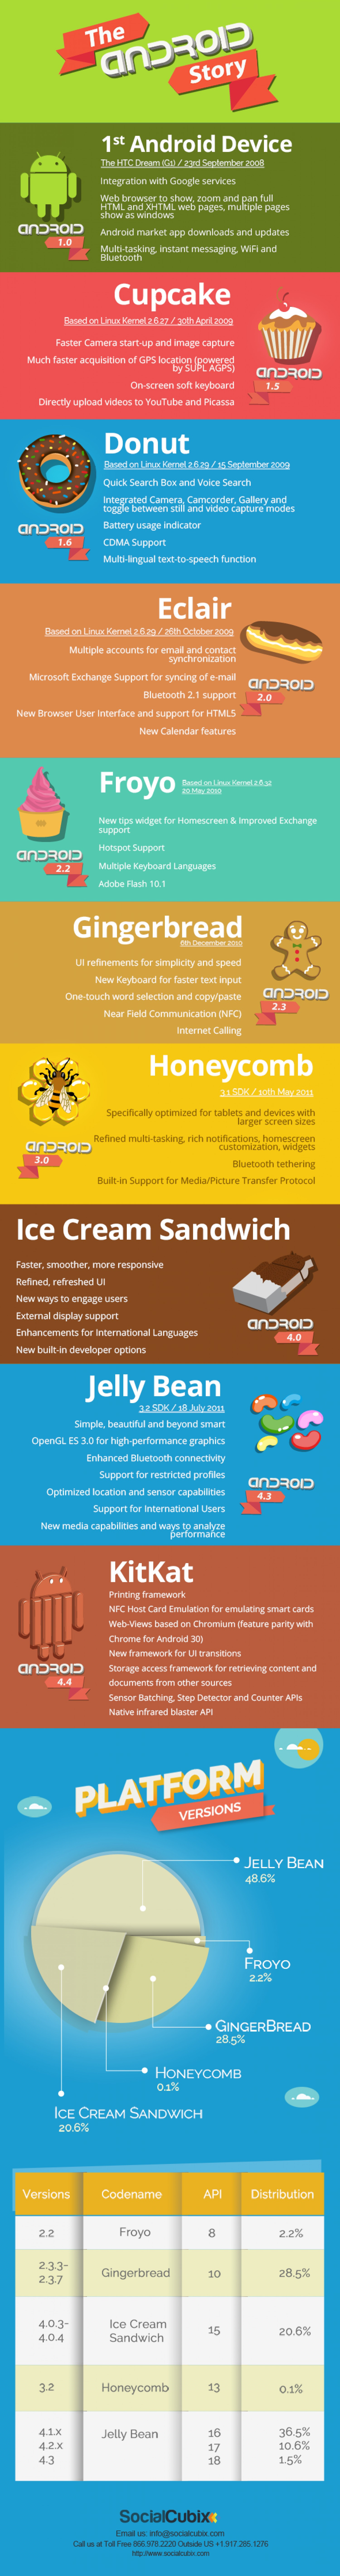 the-android-story_528da5e115bed_w1500